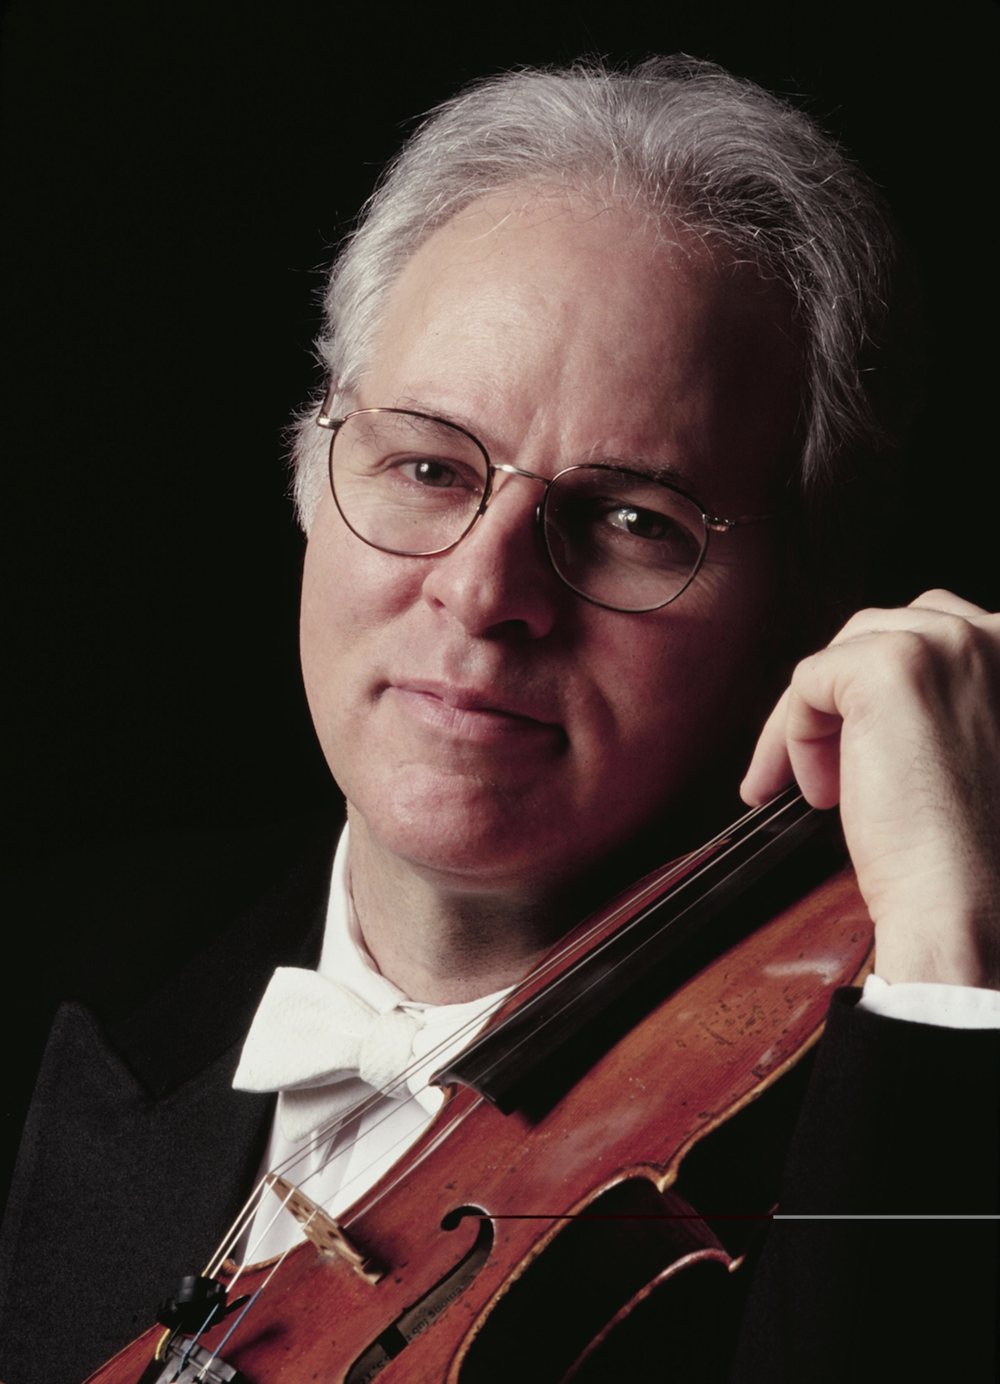 Joel Smirnoff - Joel Smirnoff, conductor and violinist, is President of the Cleveland Institute of Music. He is a native of New York City and former chair of the violin department at The Juilliard School. He has been a member of the Juilliard String Quartet since 1986, and the ensemble's leader since 1997. The Quartet, founded in 1947, has become a living American legend and won four GRAMMY Awards.Formerly the group's second violinist, Mr. Smirnoff attended the University of Chicago and The Juilliard School and was a member of the Boston Symphony Orchestra for six years. Second Prize-winner in the International American Music Competition in 1983, he made his New York recital debut in 1985 at Carnegie's Weill Recital Hall as part of the Emerging Artists series and at Town Hall as part of the Midtown Masters series. In 1997, he was featured violin soloist at Tanglewood in a concert dedicated to the memory of violinist Louis Krasner, performing the Berg Violin Concerto under the direction of Bernard Haitink. Mr. Smirnoff has participated in the world premiere of numerous contemporary works, many of which were composed for him. Mr. Smirnoff is a Sony recording artist and has solo recordings on GM, CRI and Northeastern Records.Mr. Smirnoff has served as Chair of the Violin Department at The Juilliard School since 1993 and served as Head of String Studies at the Tanglewood Music Center during the late 1990s. Mr. Smirnoff has been on the faculty of Tanglewood since 1983. He has served on the juries of the Naumburg and Indianapolis Violin Competitions. He also pursues an active career as a conductor, both in the U.S. and abroad. In the summer of 2000, Mr. Smirnoff made his official American conducting debut with the San Francisco Symphony, conducting an all-Tchaikovsky program. He has also been a frequent guest with the New World Symphony and the Tanglewood Music Center Orchestra. In May 2004, he received rave reviews for his debut with the St. Paul Chamber Orchestra, replacing Peter Oundjian, who had fallen ill. In Europe, Mr. Smirnoff has conducted the Norwegian Chamber Orchestra and a European tour with the Basel Sinfonietta and Charles Rosen as soloist in the Elliott Carter Piano Concerto. Mr. Smirnoff has led both the Juilliard Symphony and the Juilliard Orchestra in concert. He has also appeared in concert with the Louisiana Philharmonic, the Phoenix Symphony, the Chicago Philharmonic, the Western New York Chamber Orchestra and the Texas Music Festival Orchestra. Mr. Smirnoff also plays jazz, performing frequently as improvising soloist with Tony Bennett. His solos were featured on the GRAMMY Award-winning CD Tony Bennett Sings Ellington Hot and Cool. He has also been guest soloist with Gunther Schuller and the American Jazz Orchestra, as well as the Billy Taylor Trio.Mr. Smirnoff was born into an eminent New York musical family. His mother sang with the Jack Teagarden Band under the stage name of Judy Marshall and his father, Zelly Smirnoff, played in the NBC Symphony under Toscanini and was second violinist of the Stuyvesant String Quartet. Mr. Smirnoff has been president of CIM since 2008.